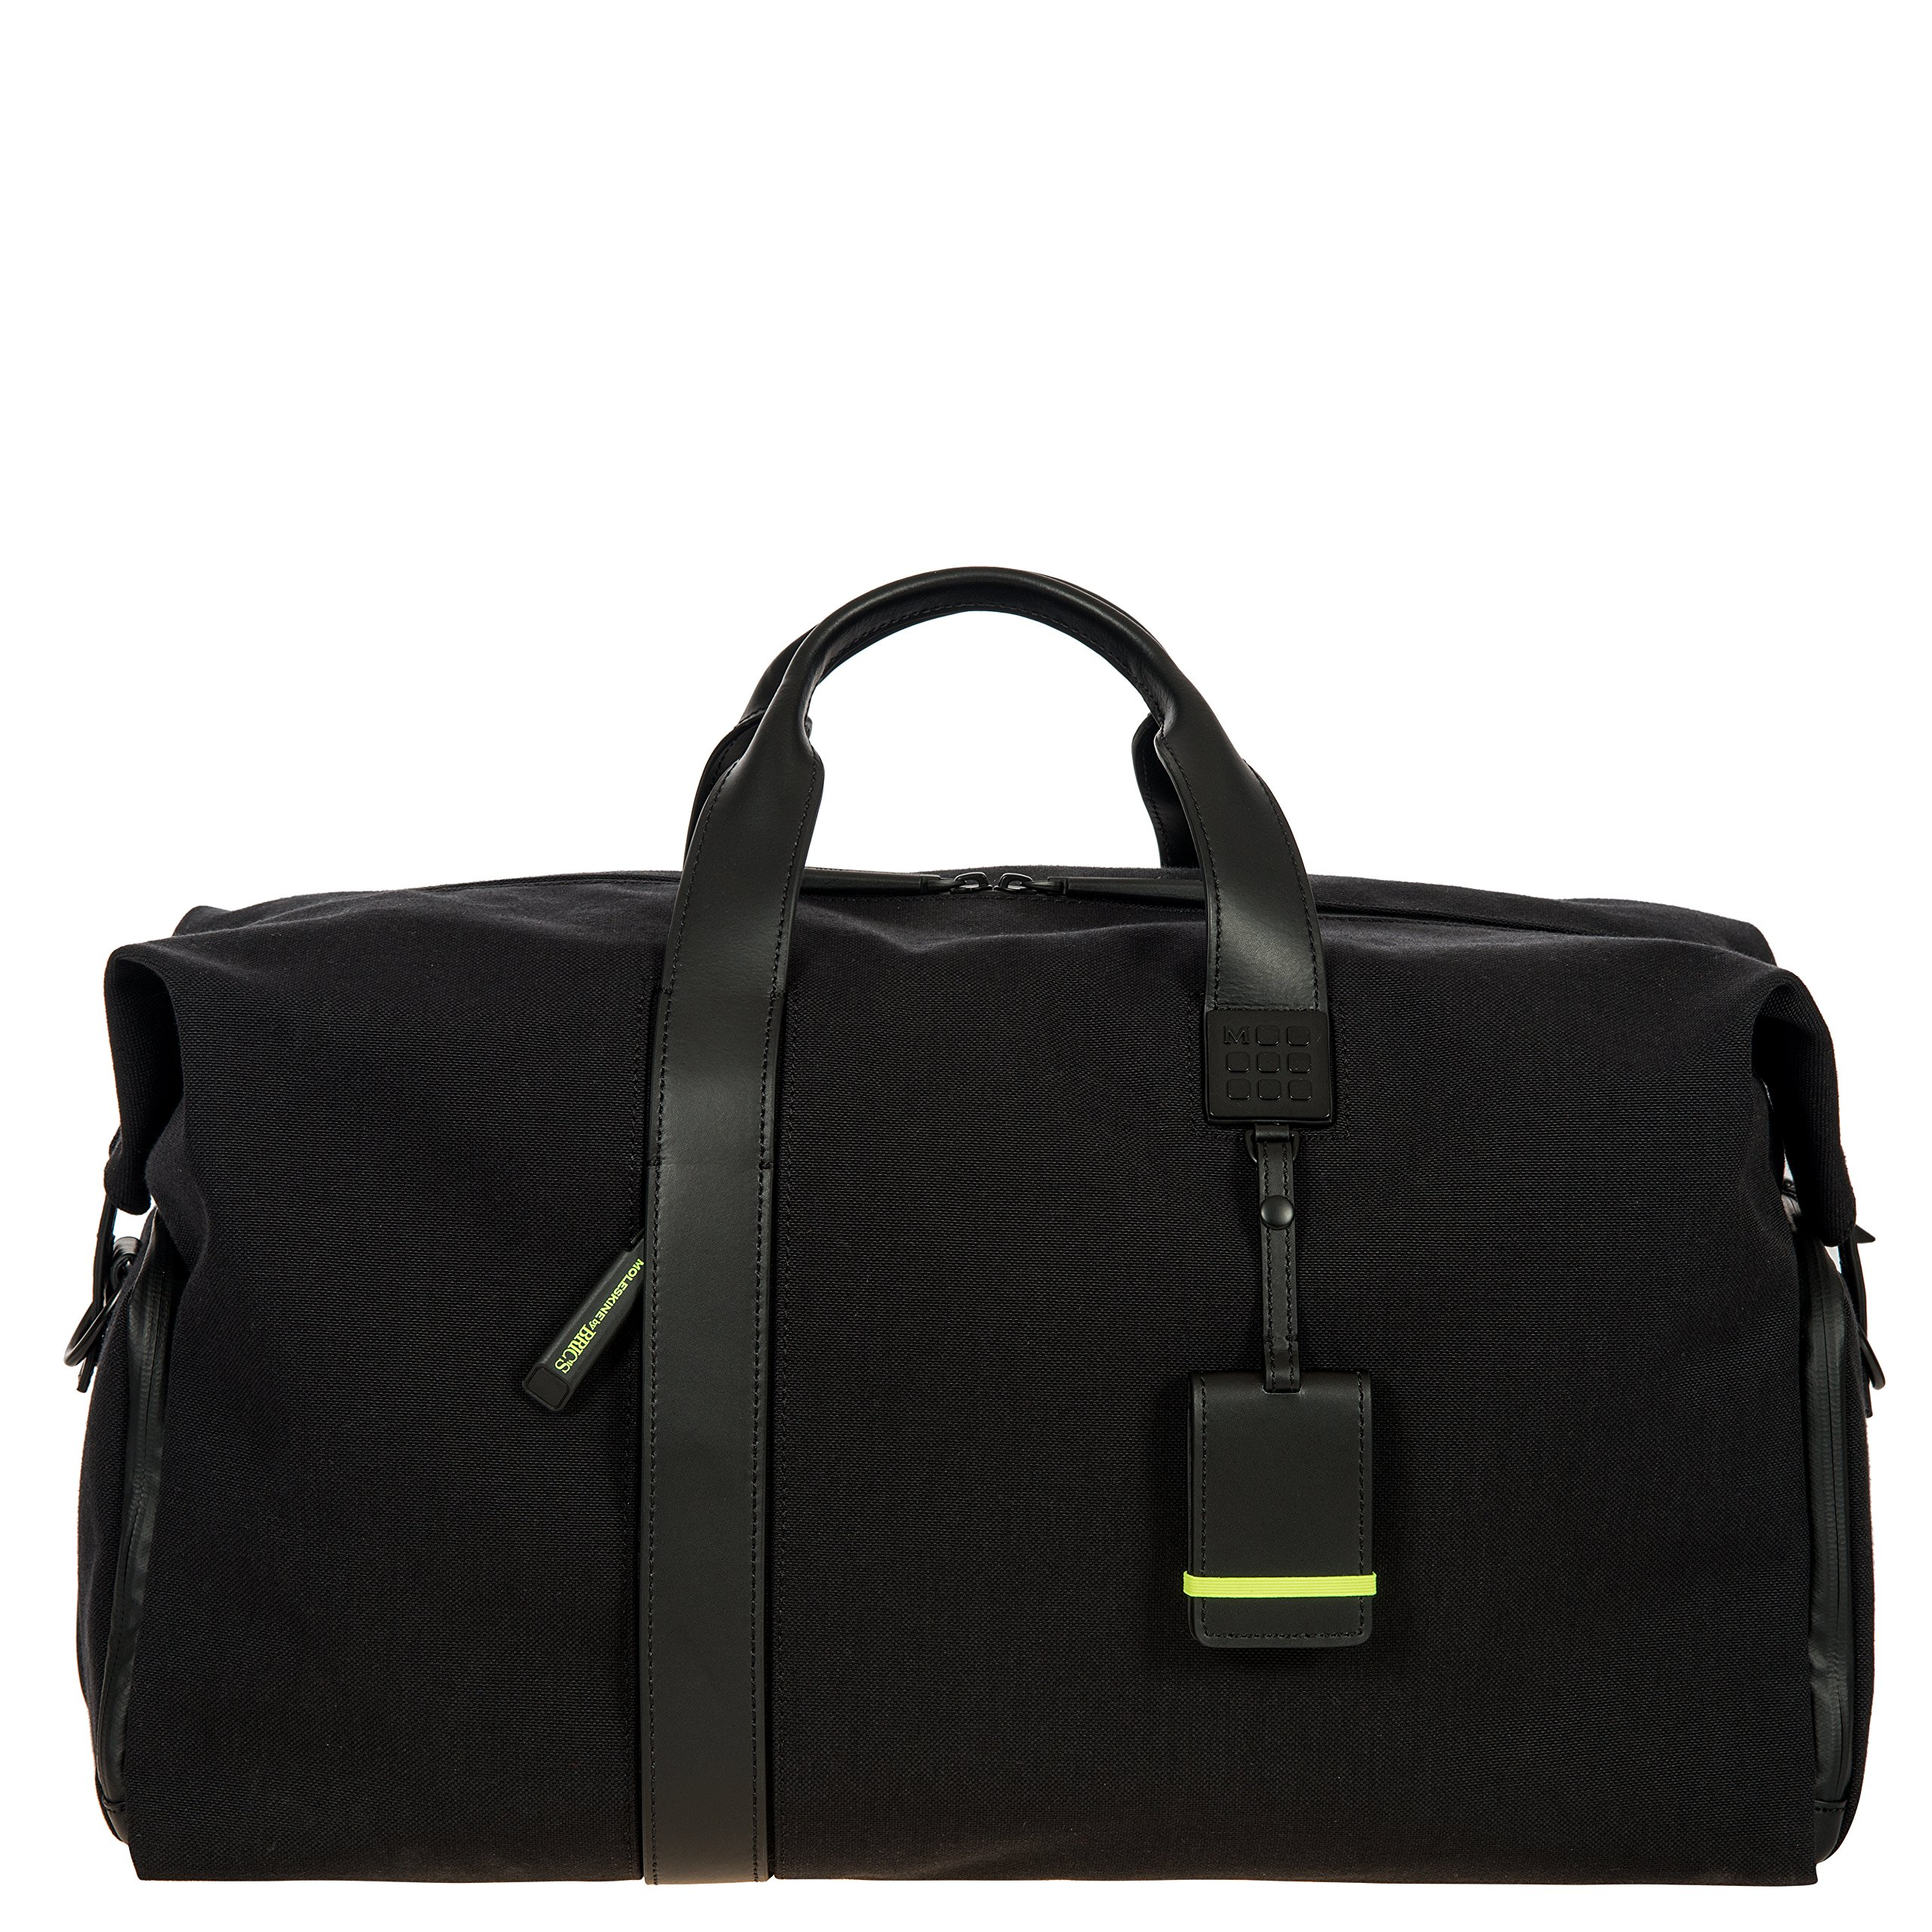 Bric's Men's Moleskine 20 inch Business Overnight Duffle Bag Weekend Duffel, Black, One Size